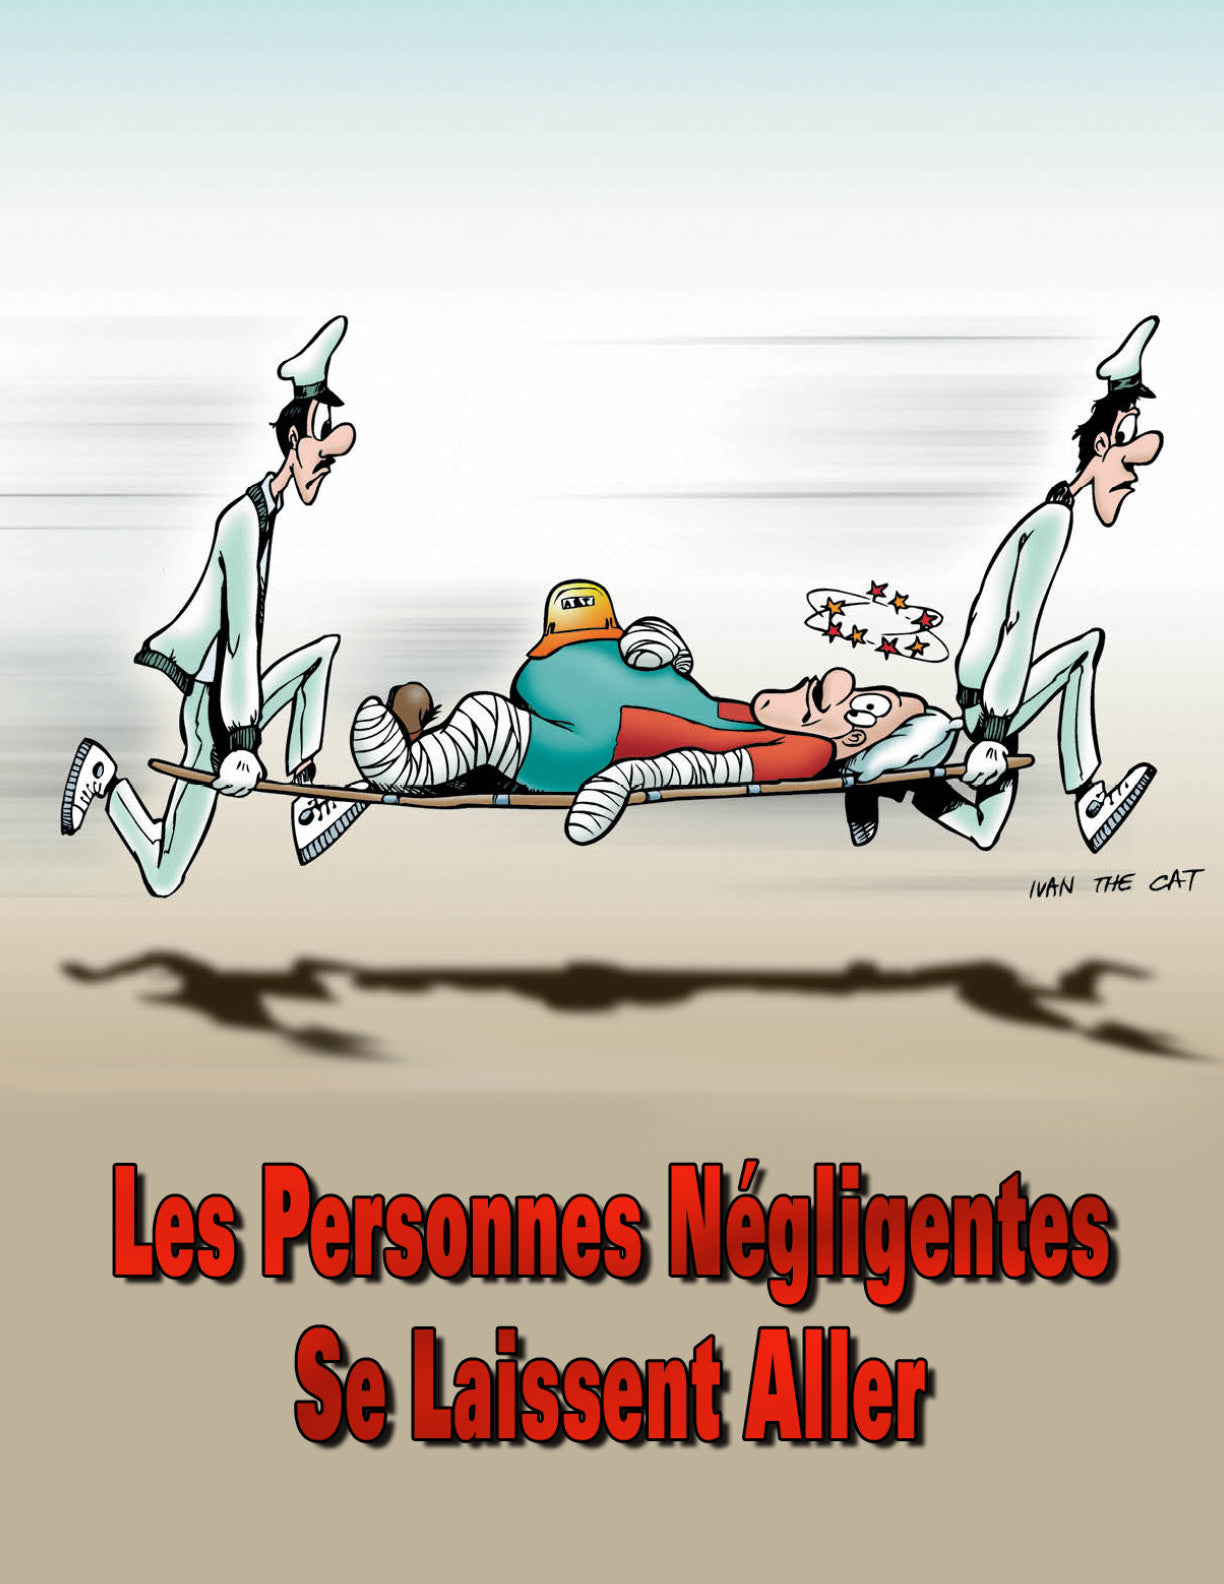 Careless People Get Carried Away - French Safety Poster